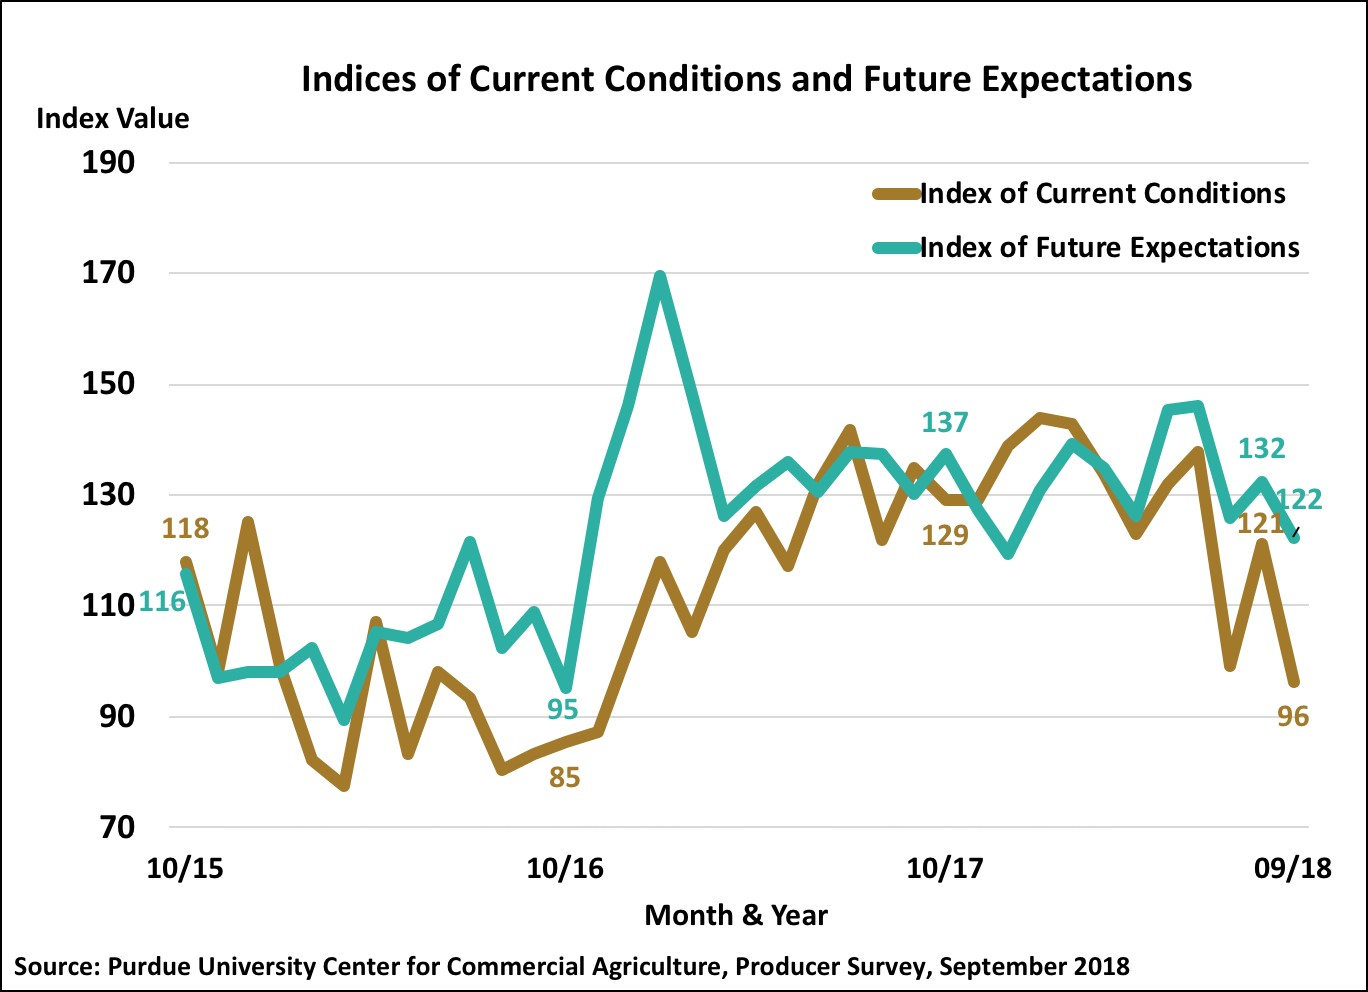 Figure 2. Indices of Current Conditions and Future Expectations, October 2015-September 2018.